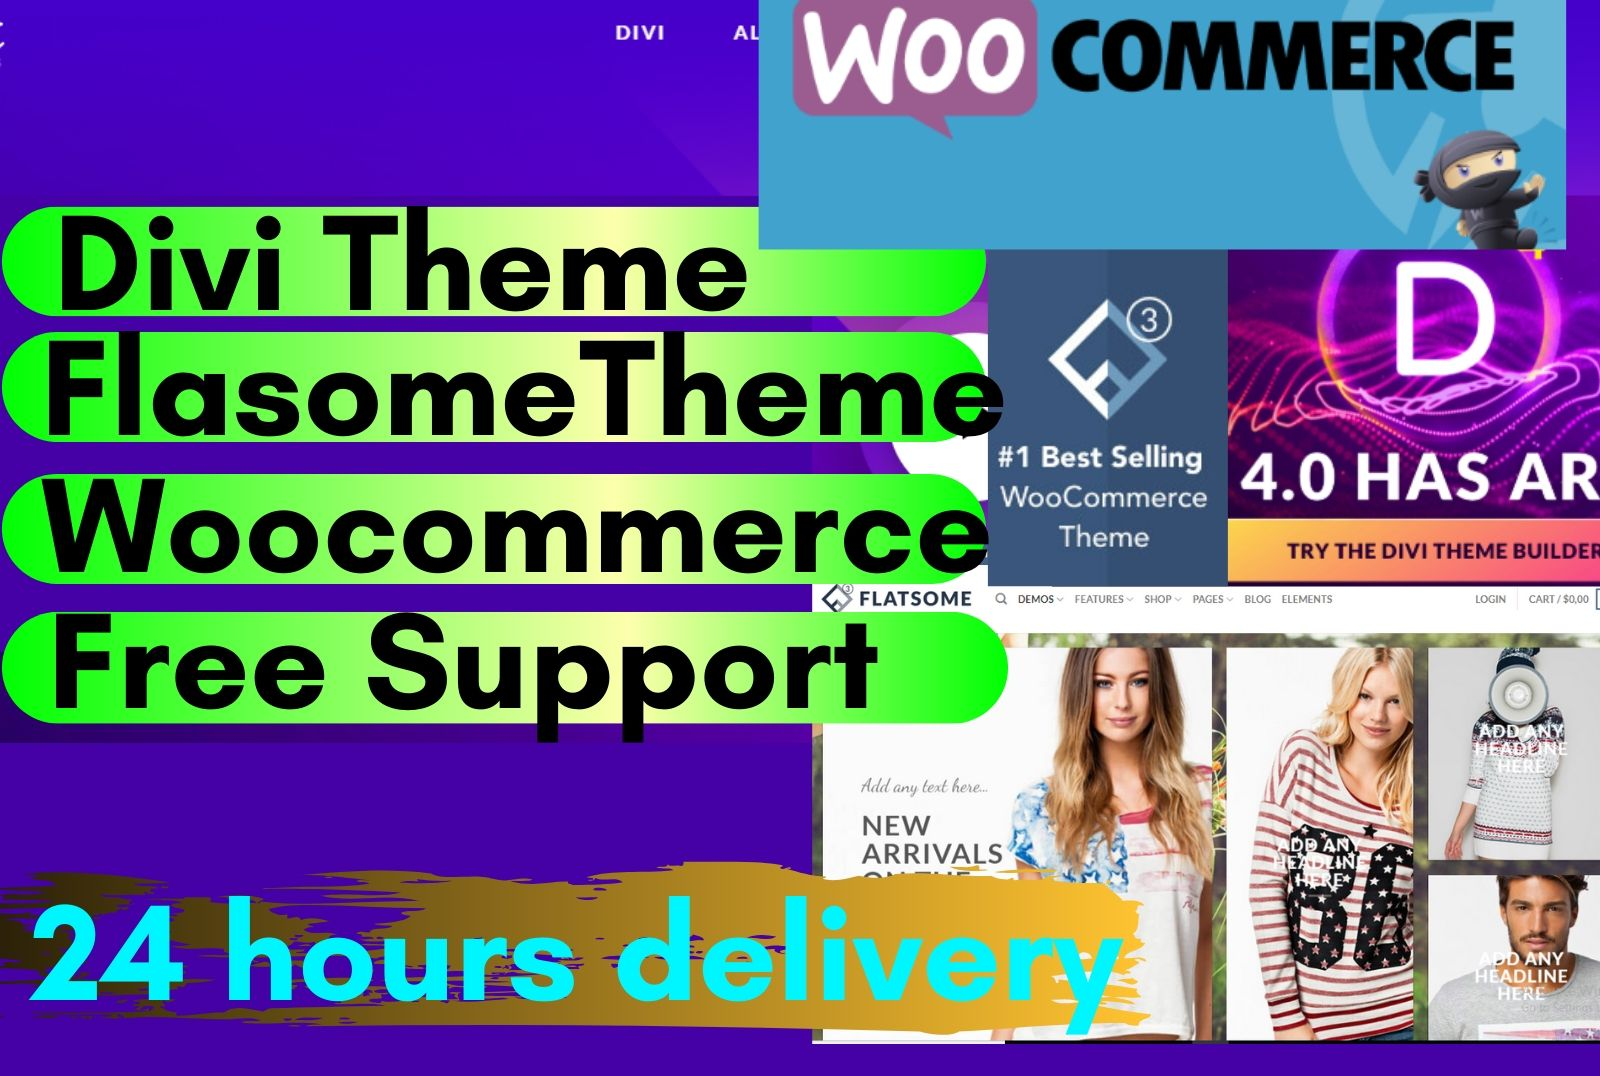 I will create wordpress woocommerce website using divi and flatsome theme